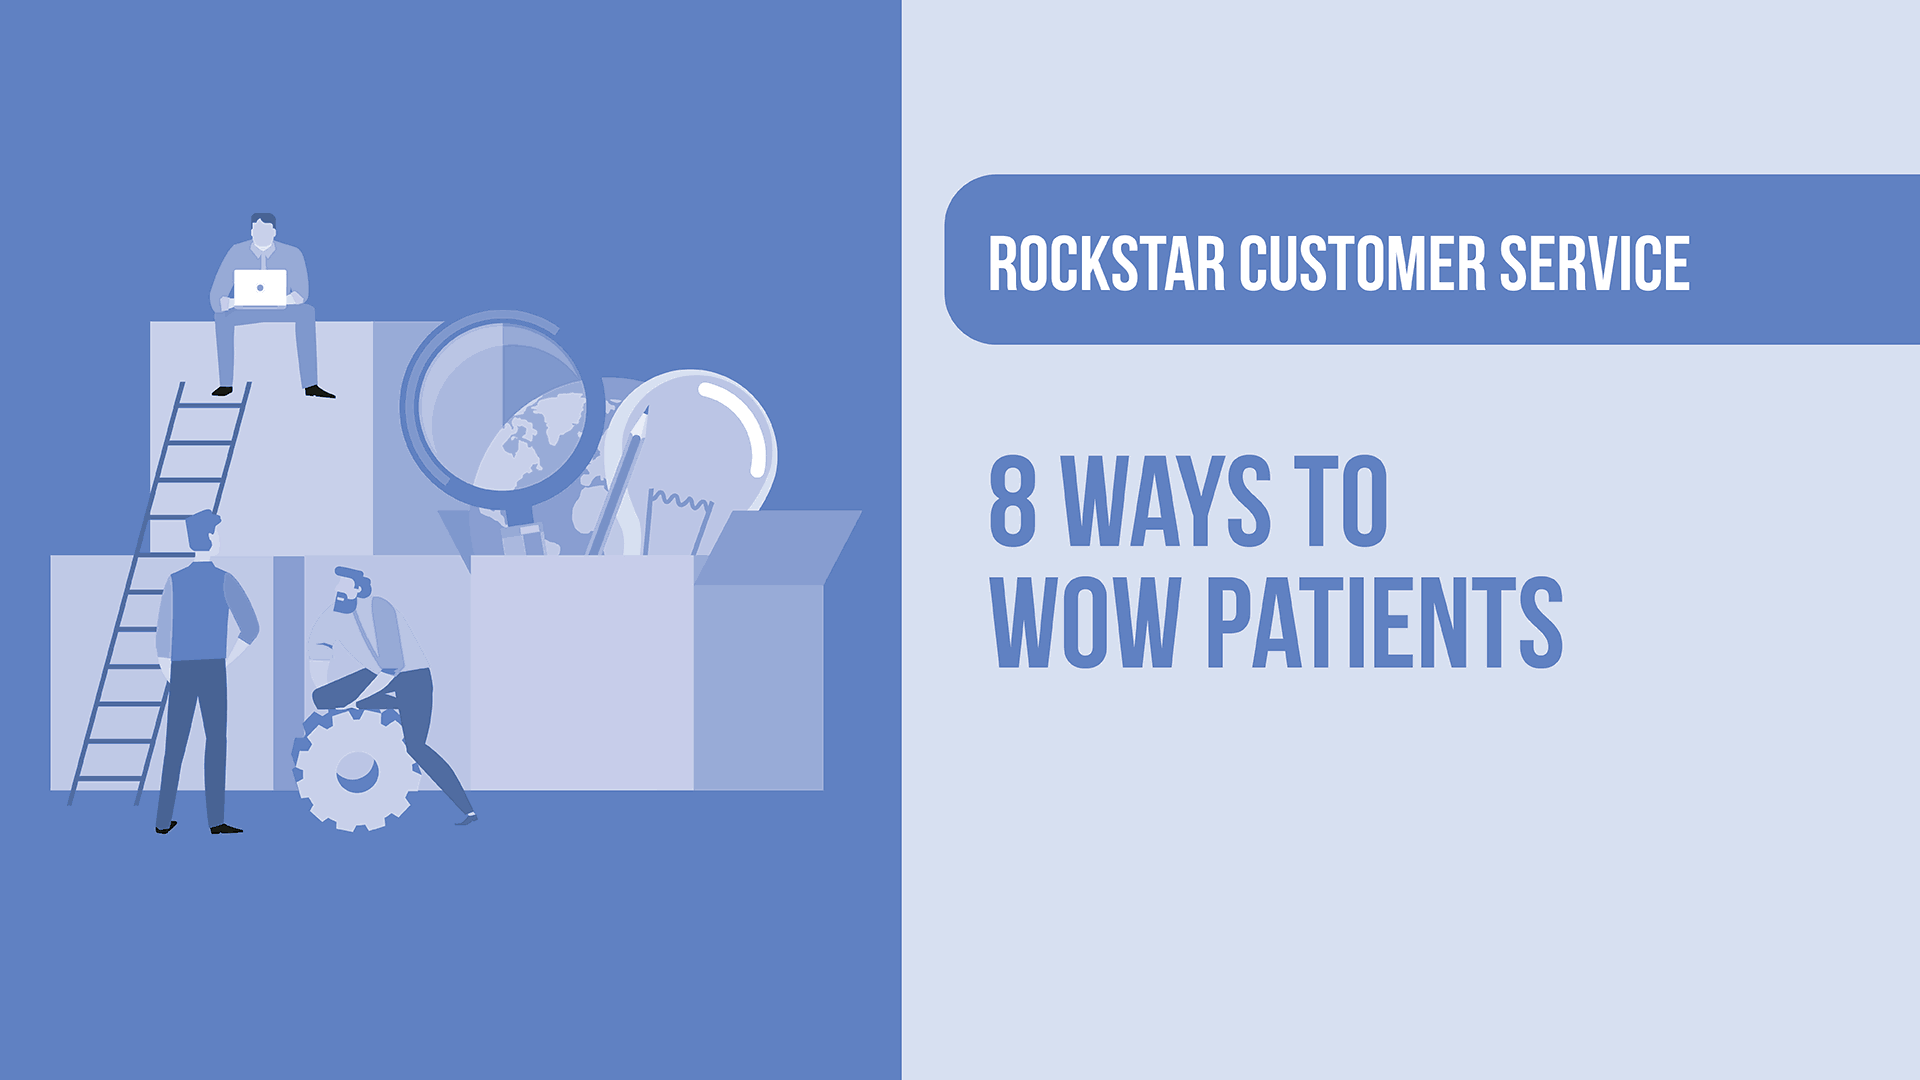 Rockstar Customer Service: 8 Ways to WOW Patients